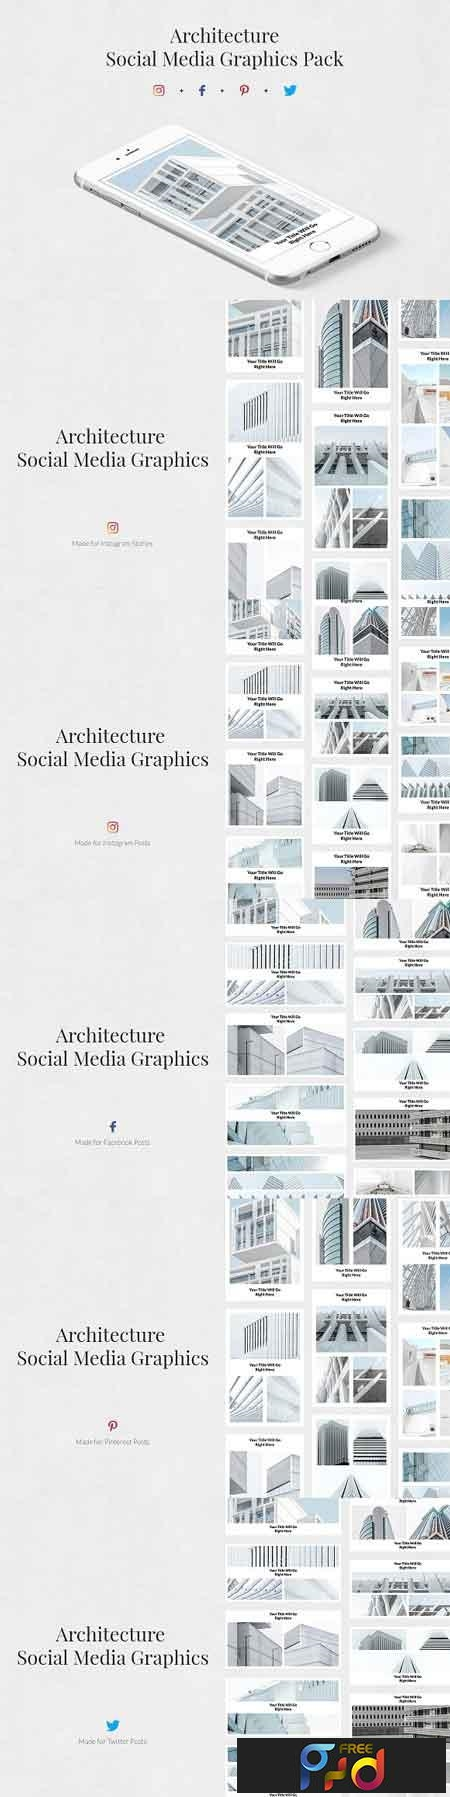 Architecture Pack 3225776 1